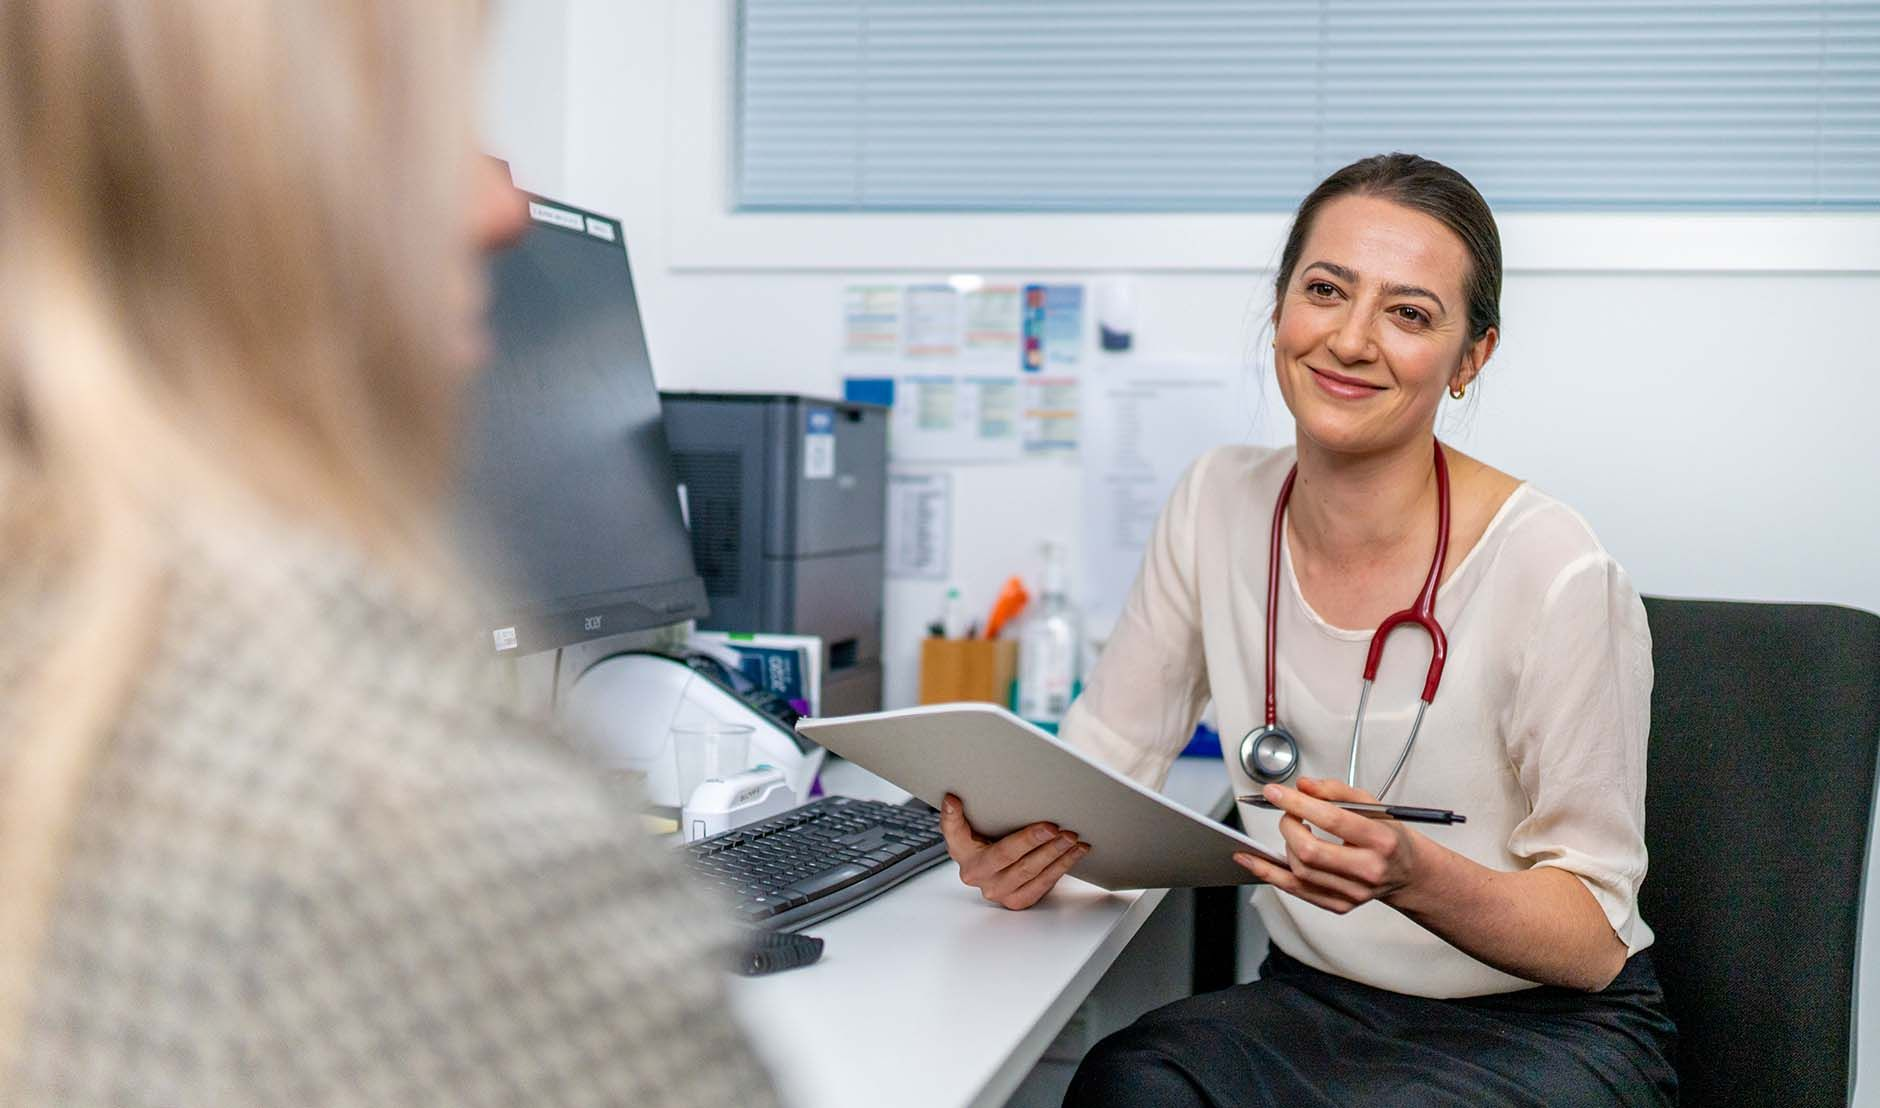 GP in clinic and Vaccinations